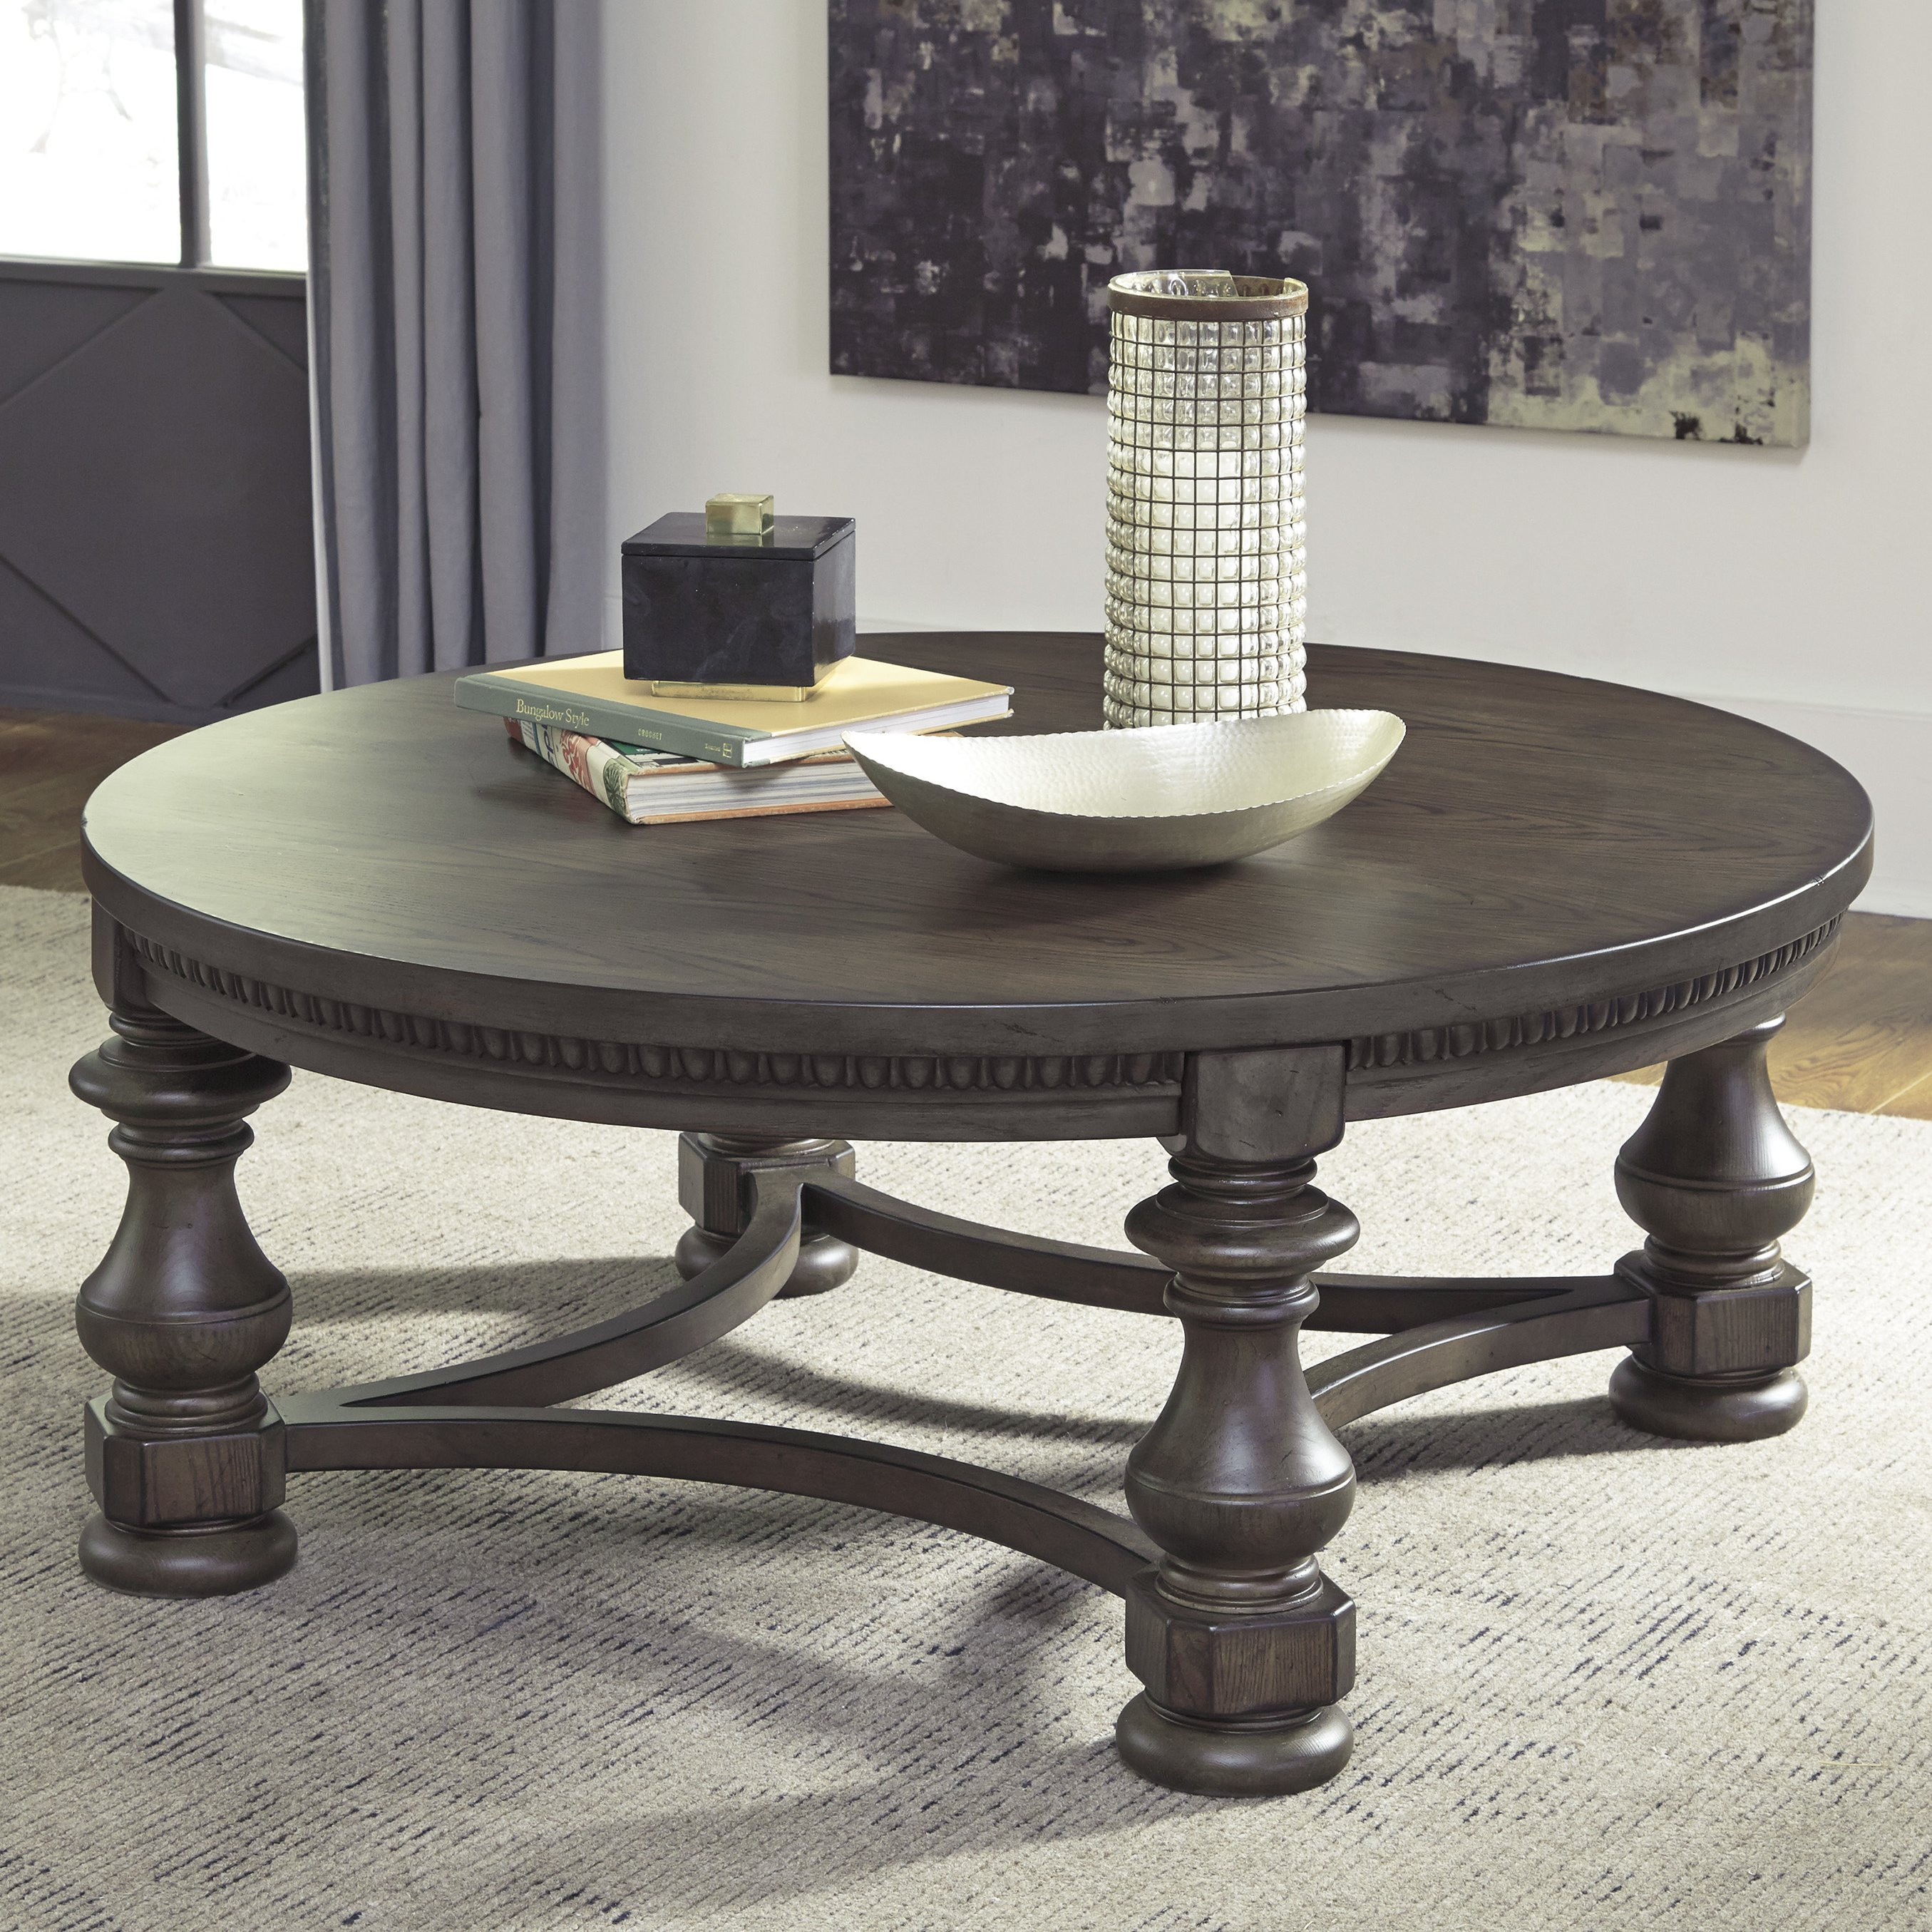 Best ideas about Ashley Coffee Table . Save or Pin Signature Design by Ashley Larrenton Coffee Table Now.